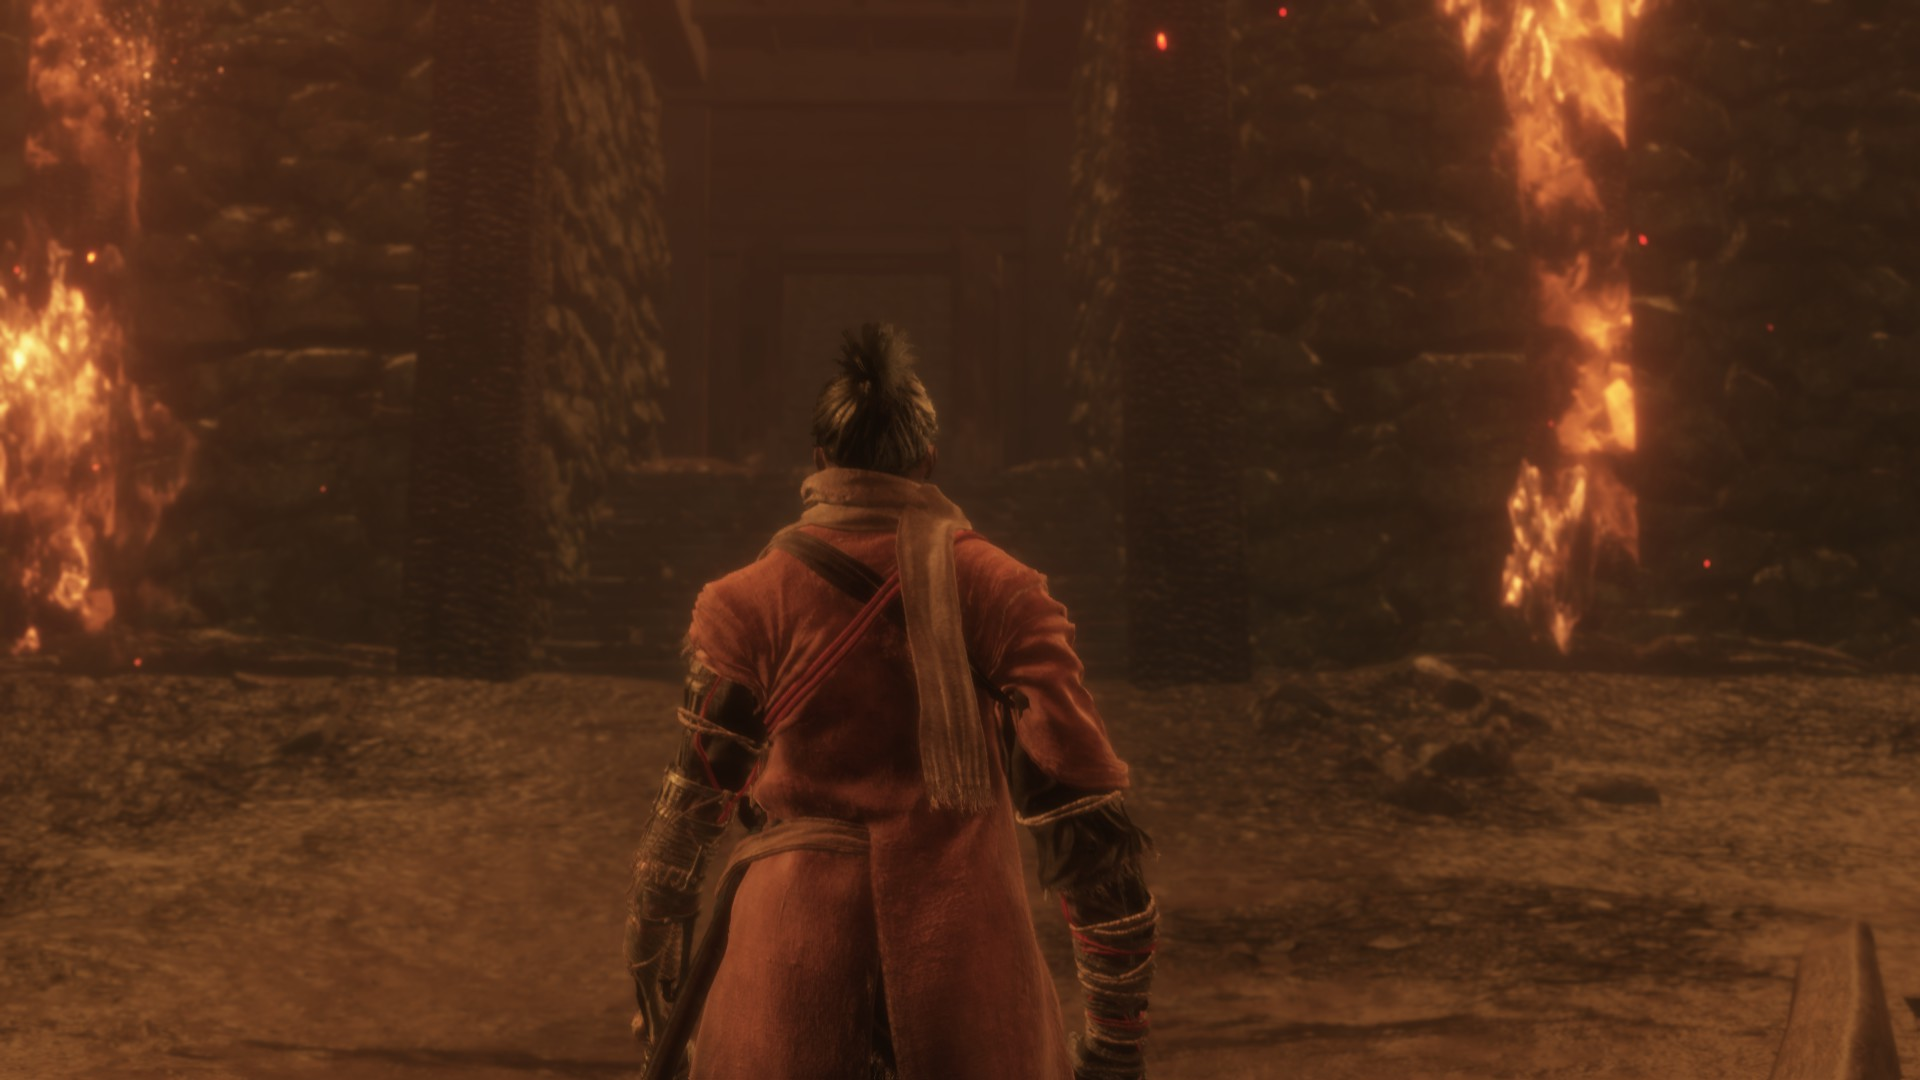 Sekiro's protagonist aka the wolf is standing alone in a hall that is caving in and burning right now.